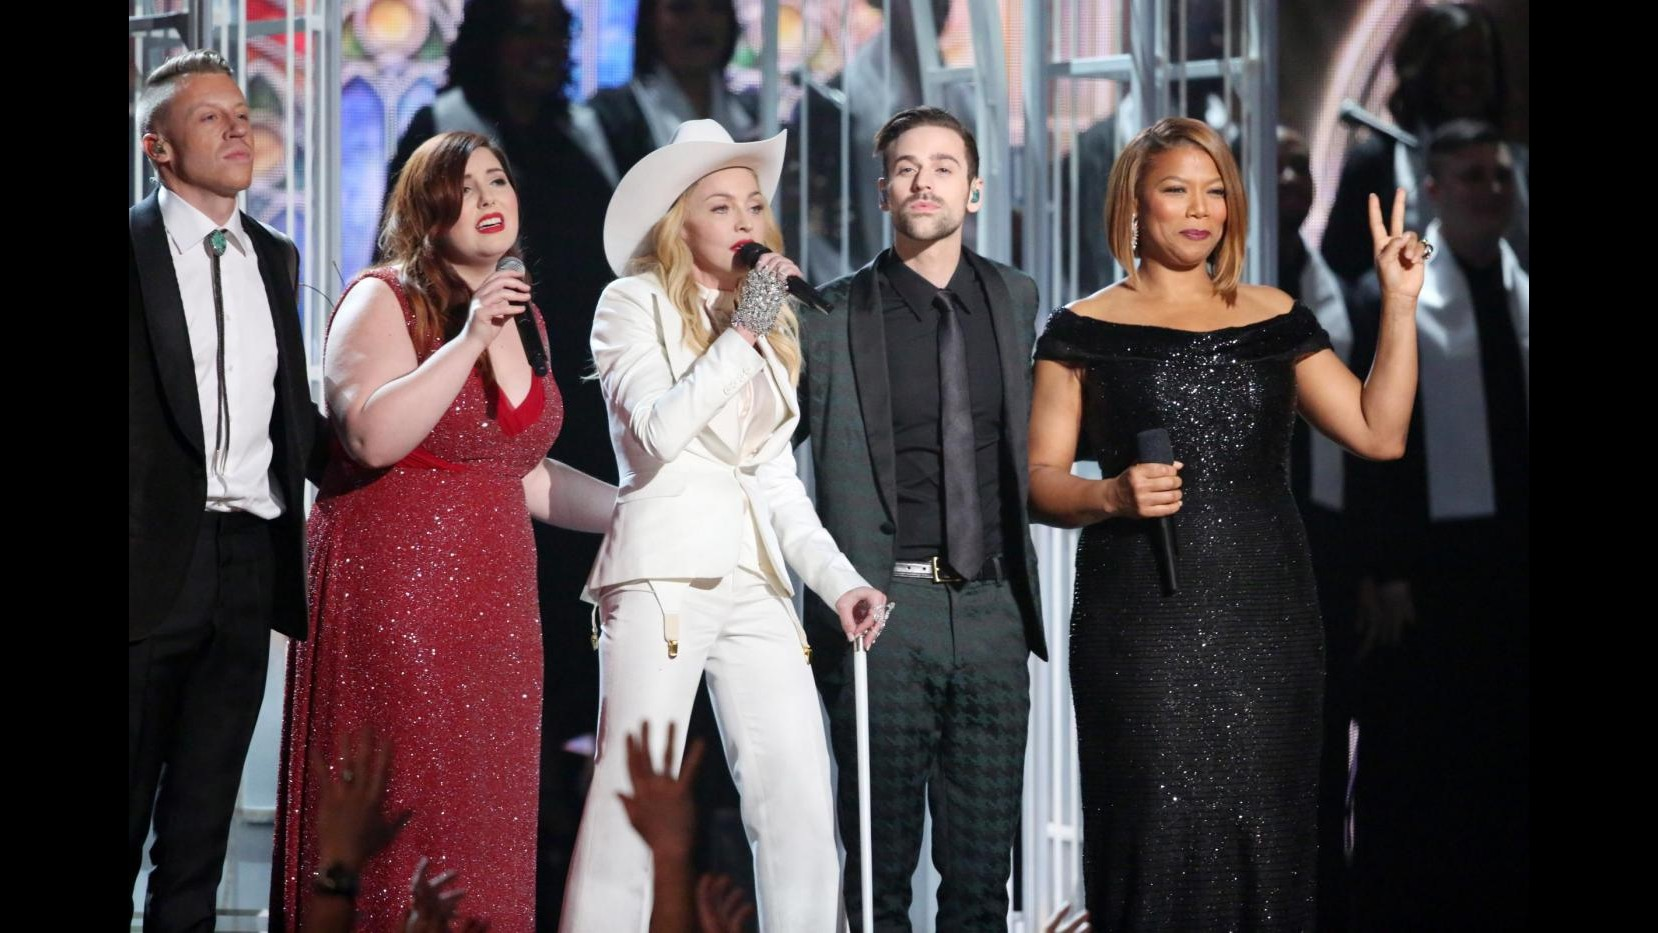 Grammy, Lorde vince Canzone dell'anno, Macklemore & Ryan Lewis Rap album